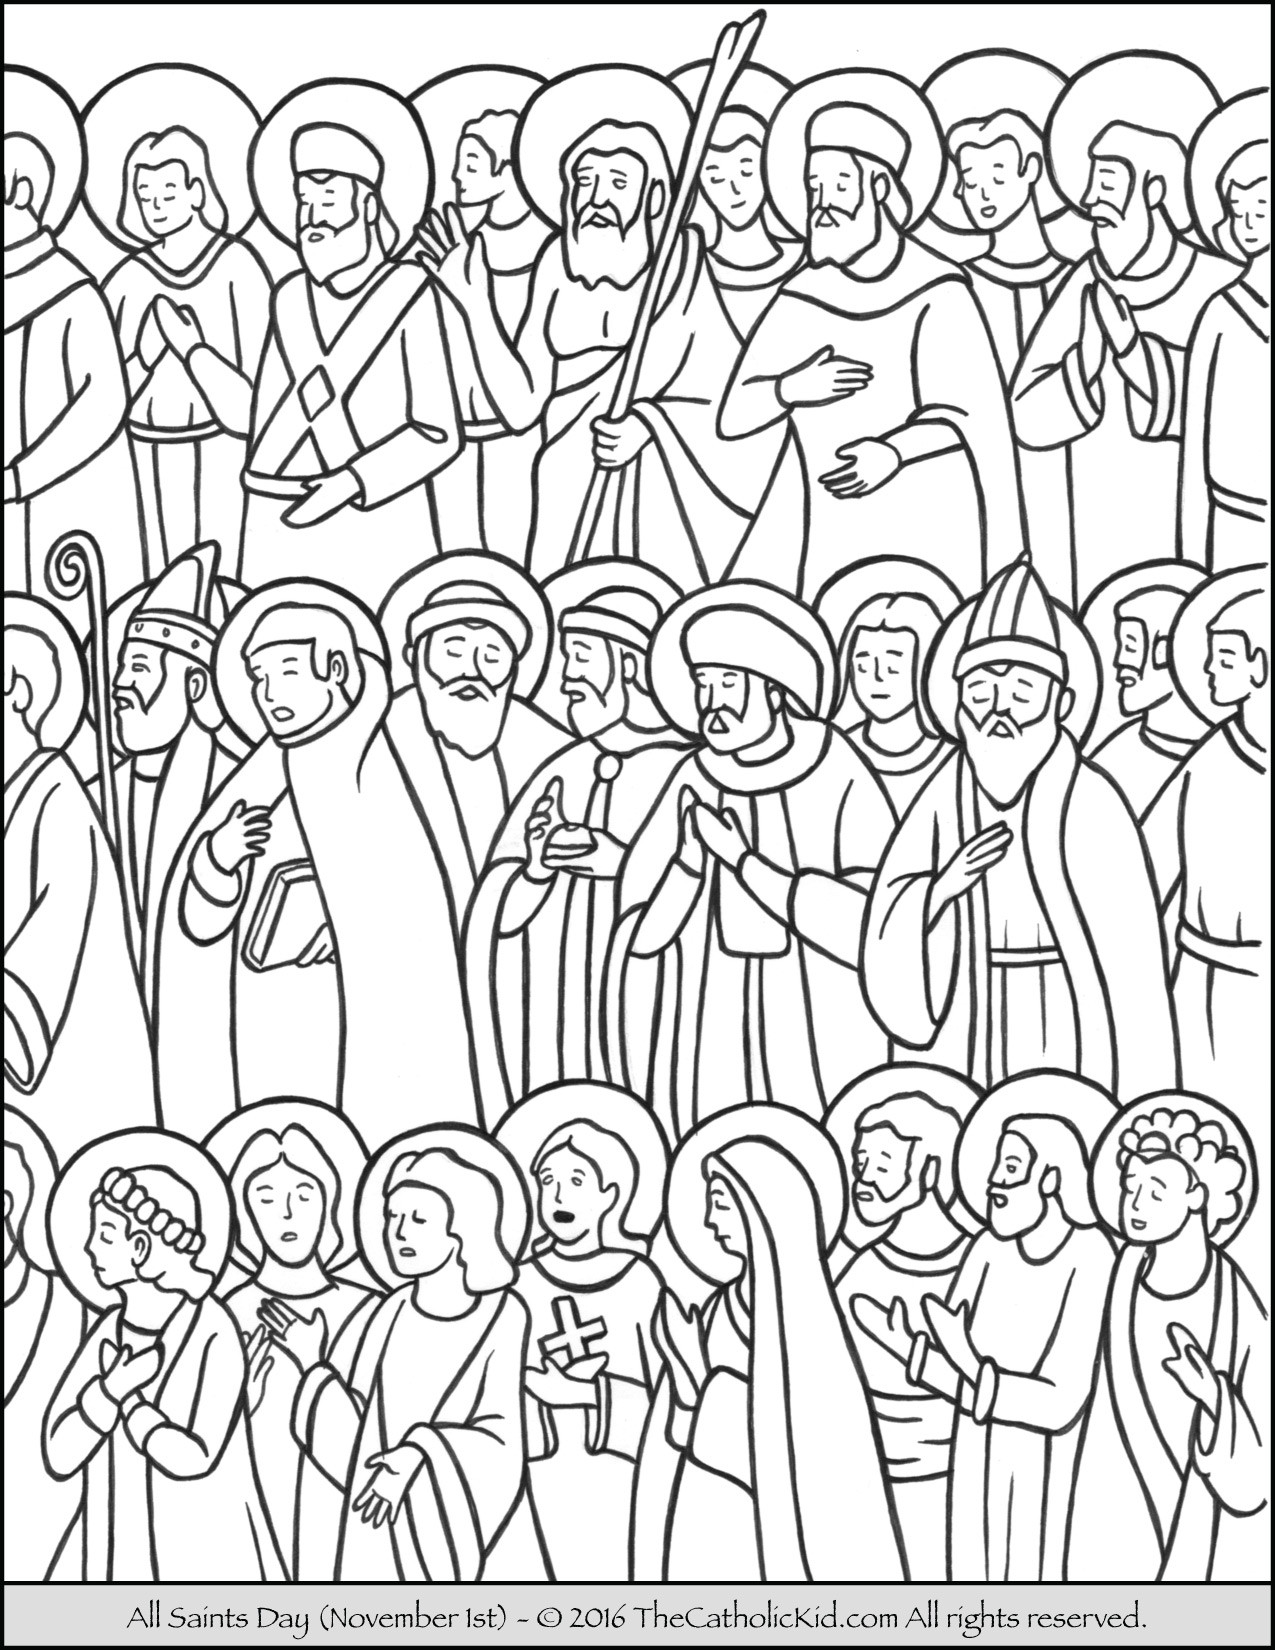 Free Coloring Pages For All Saints Day  All Saints Day Coloring Page The Catholic Kid Catholic